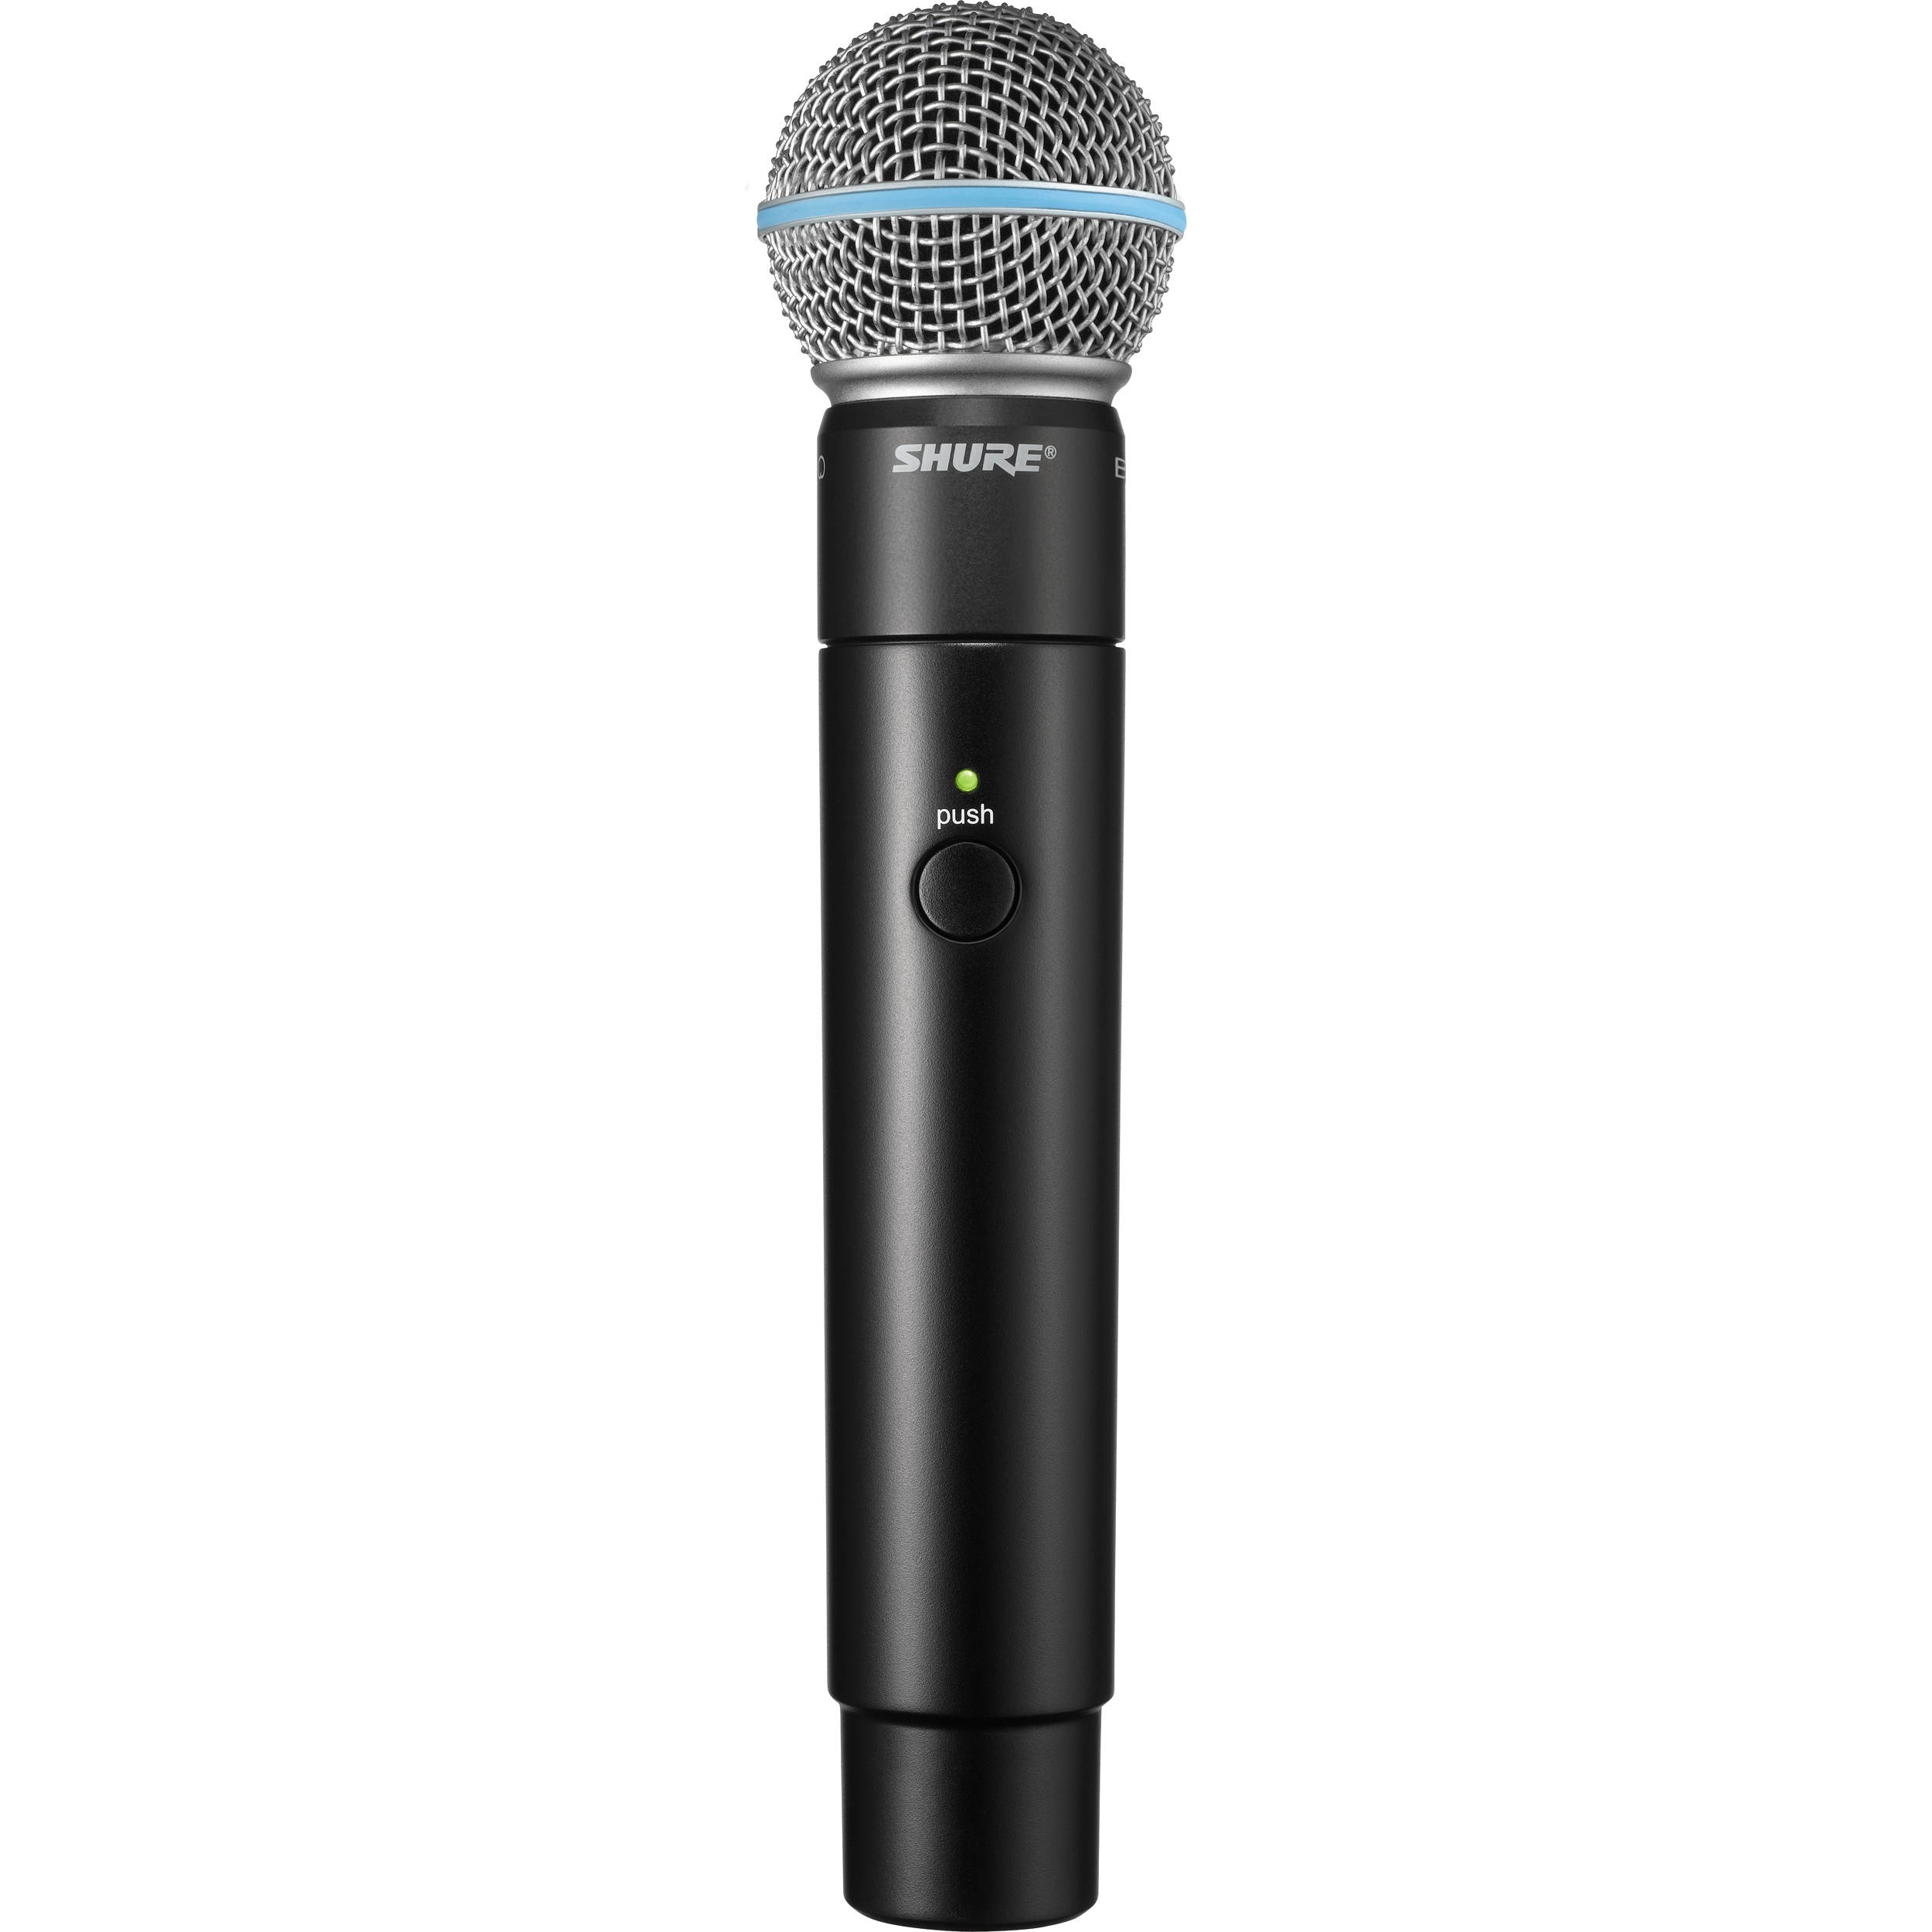 Shure MXW2 Handheld Transmitter with Beta 58A Microphone Capsule